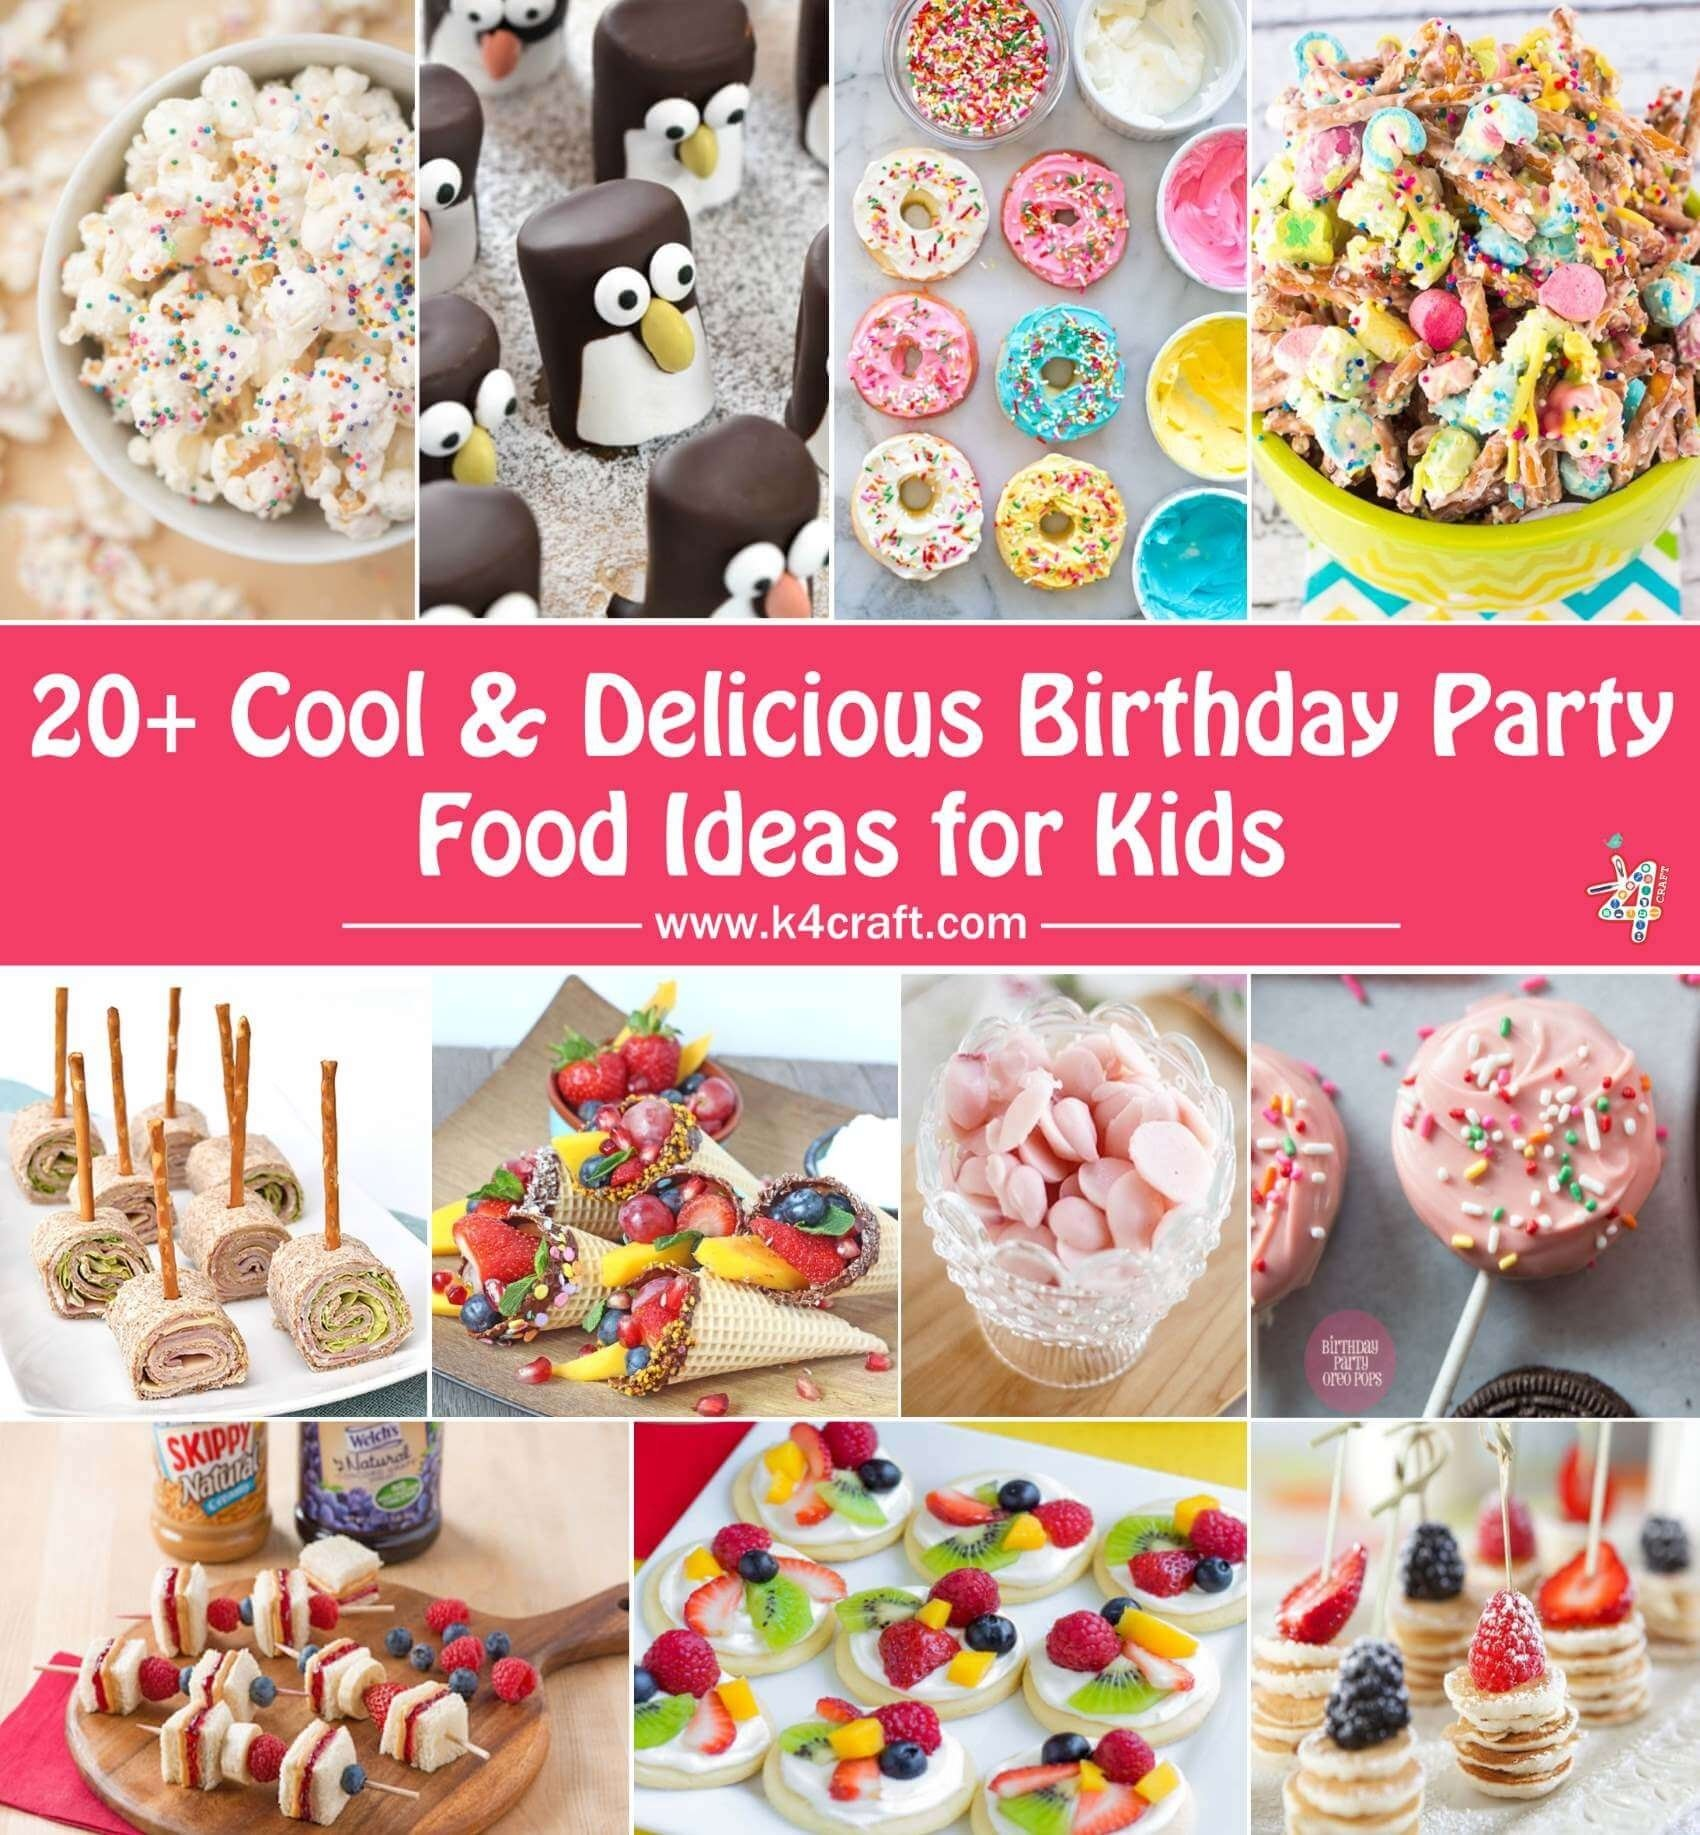 10 Famous Kids Birthday Party Food Ideas cool delicious birthday party food ideas for kids k4 craft 2020